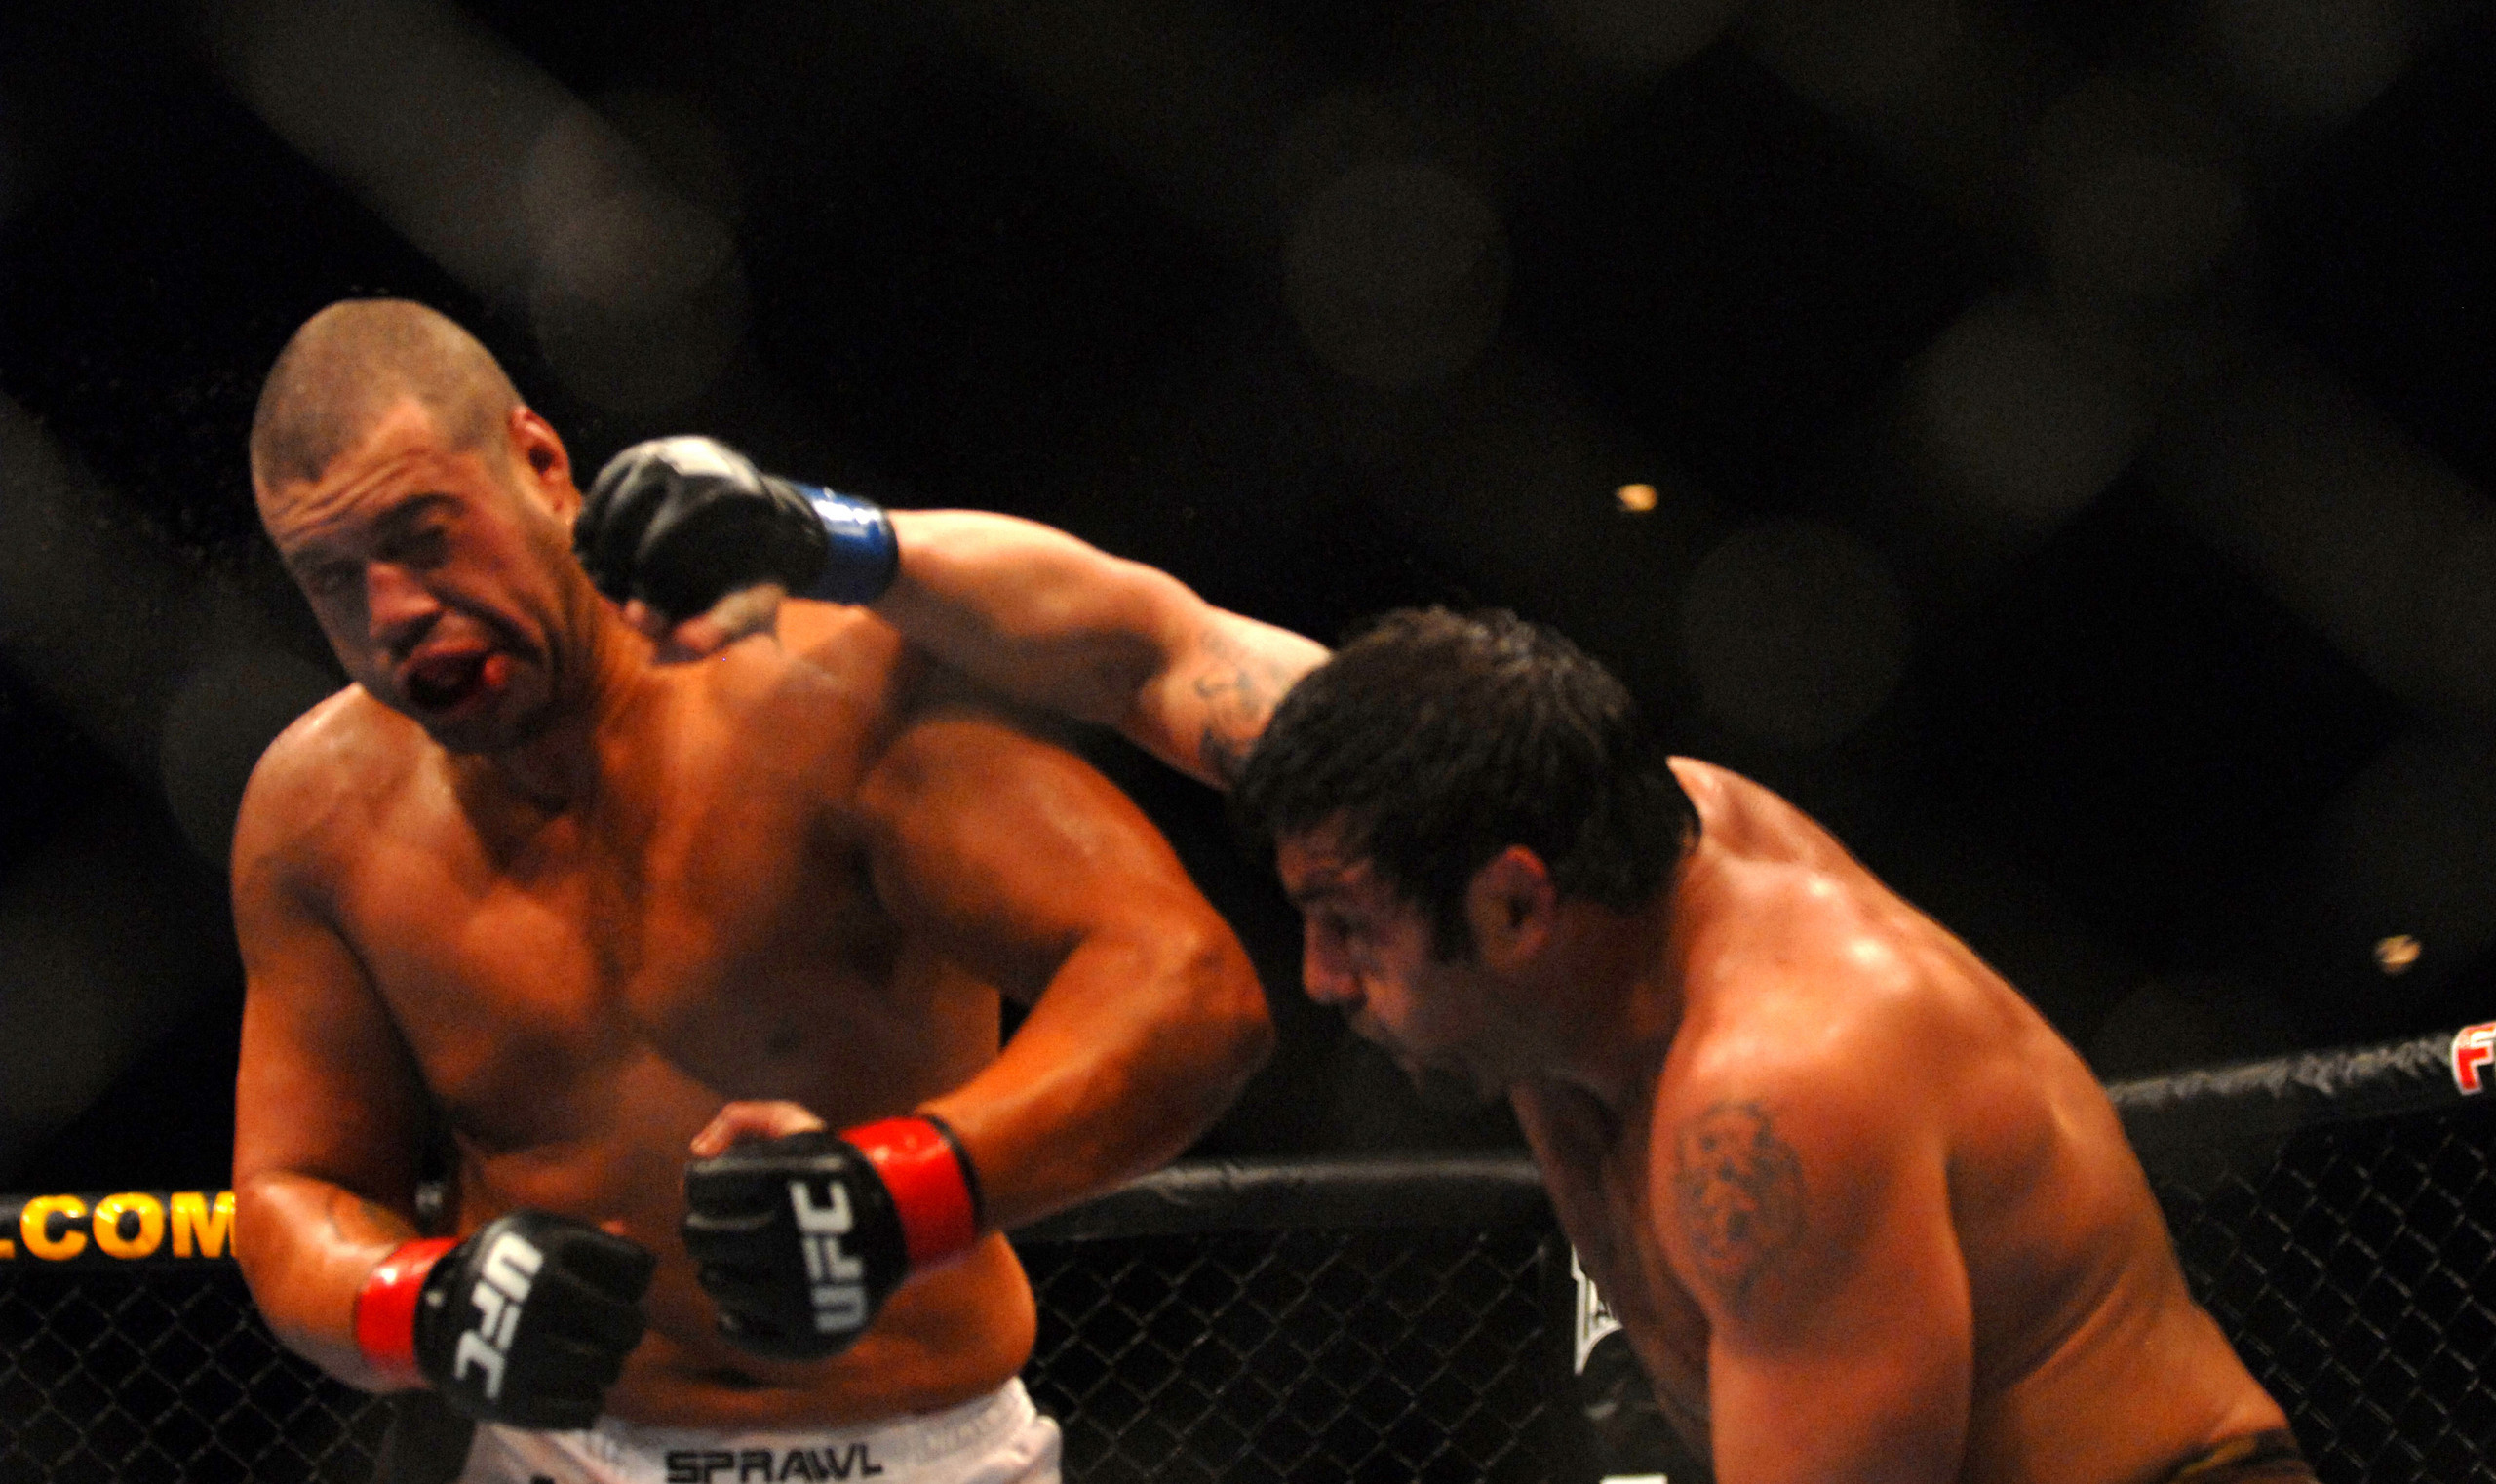 Ufc fighters wallpaper 78 images - Free ufc wallpapers ...